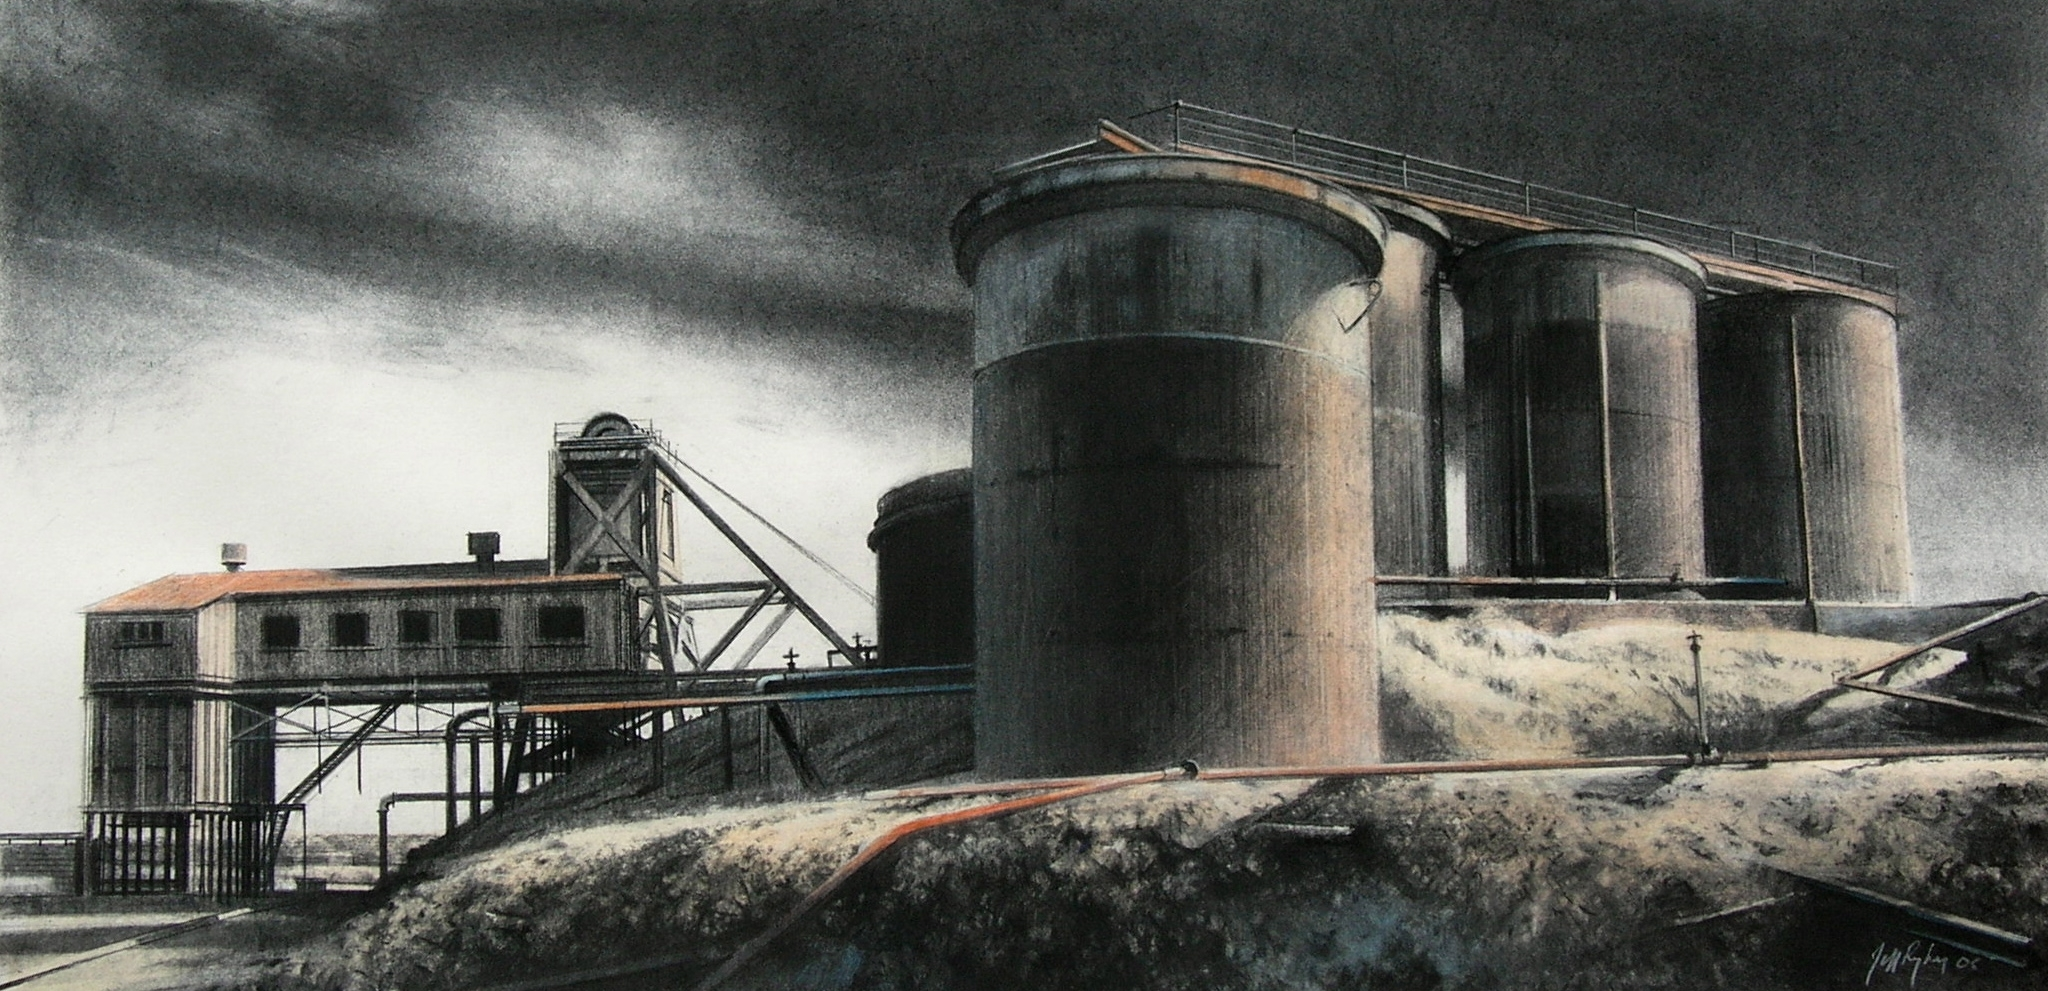 Brown's Shaft and Tanks